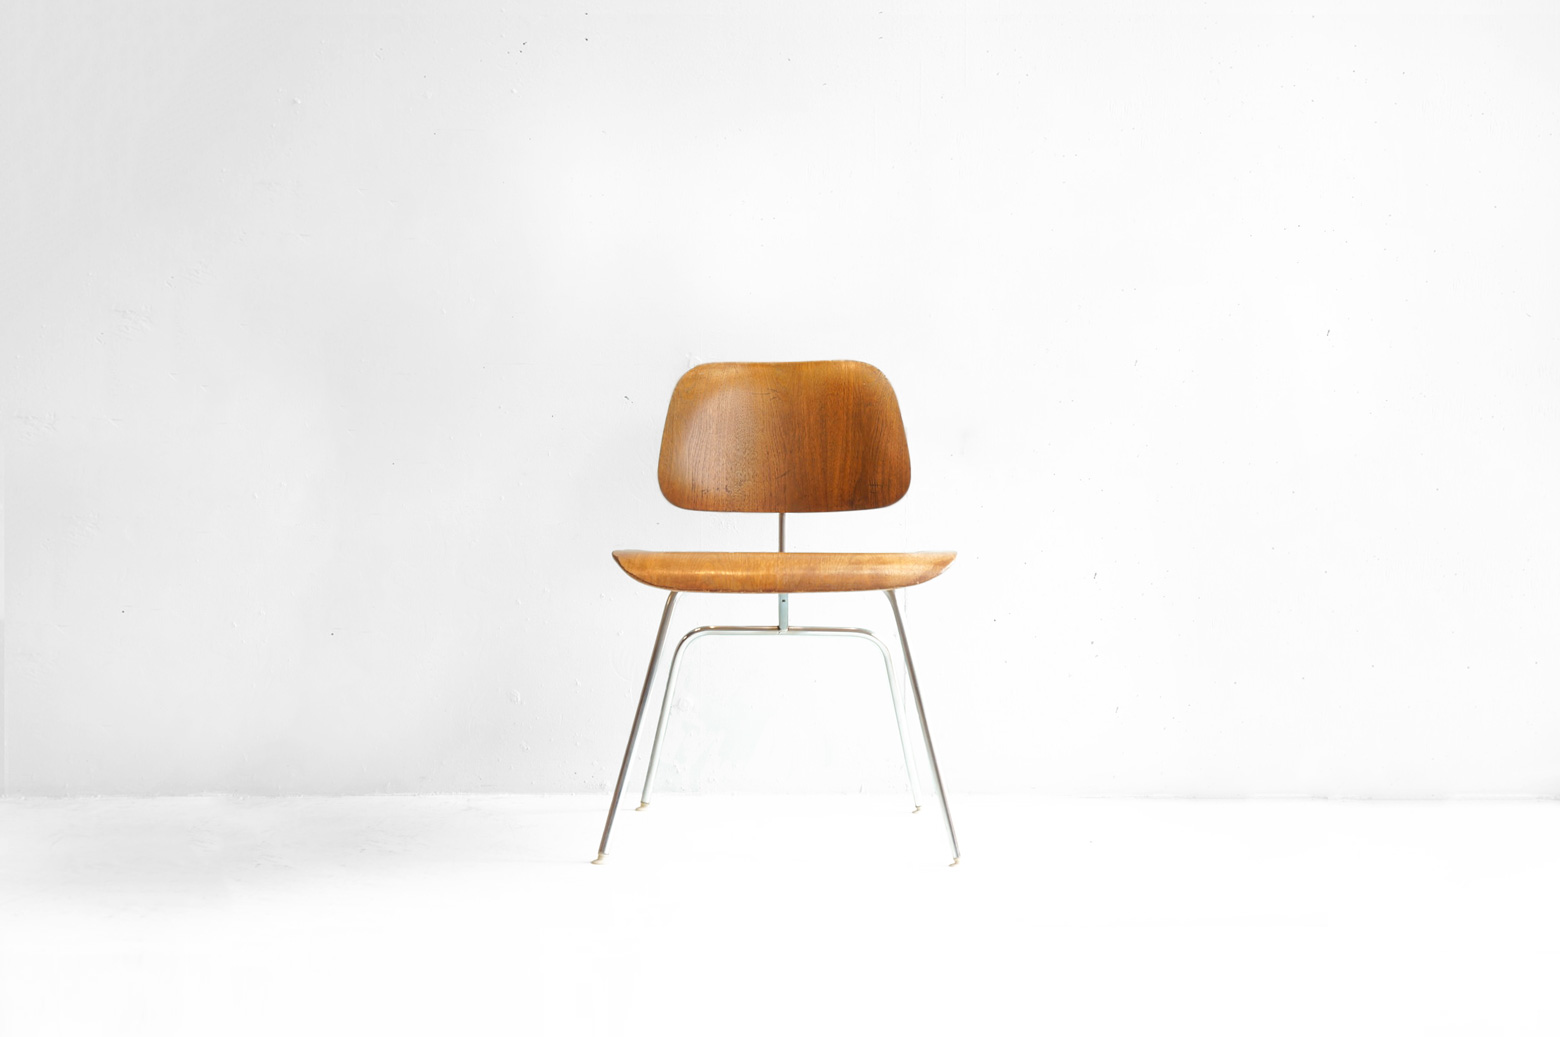 Herman Miller DCM chair / ハーマンミラー DCM チェア